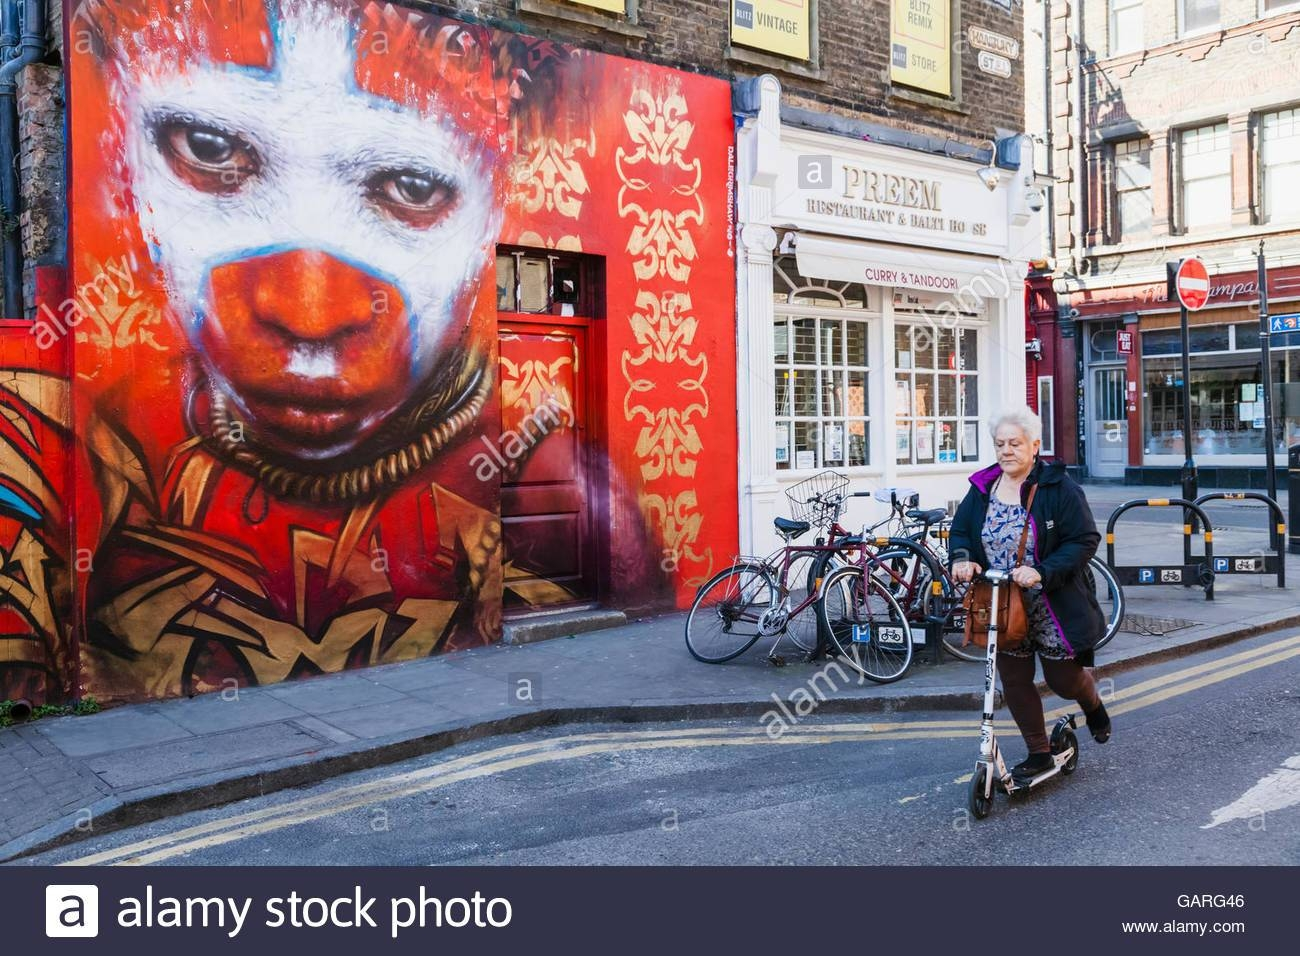 England, London, Shoreditch, Street Scene With Wall Art Stock Regarding Most Current London Scene Wall Art (View 6 of 20)